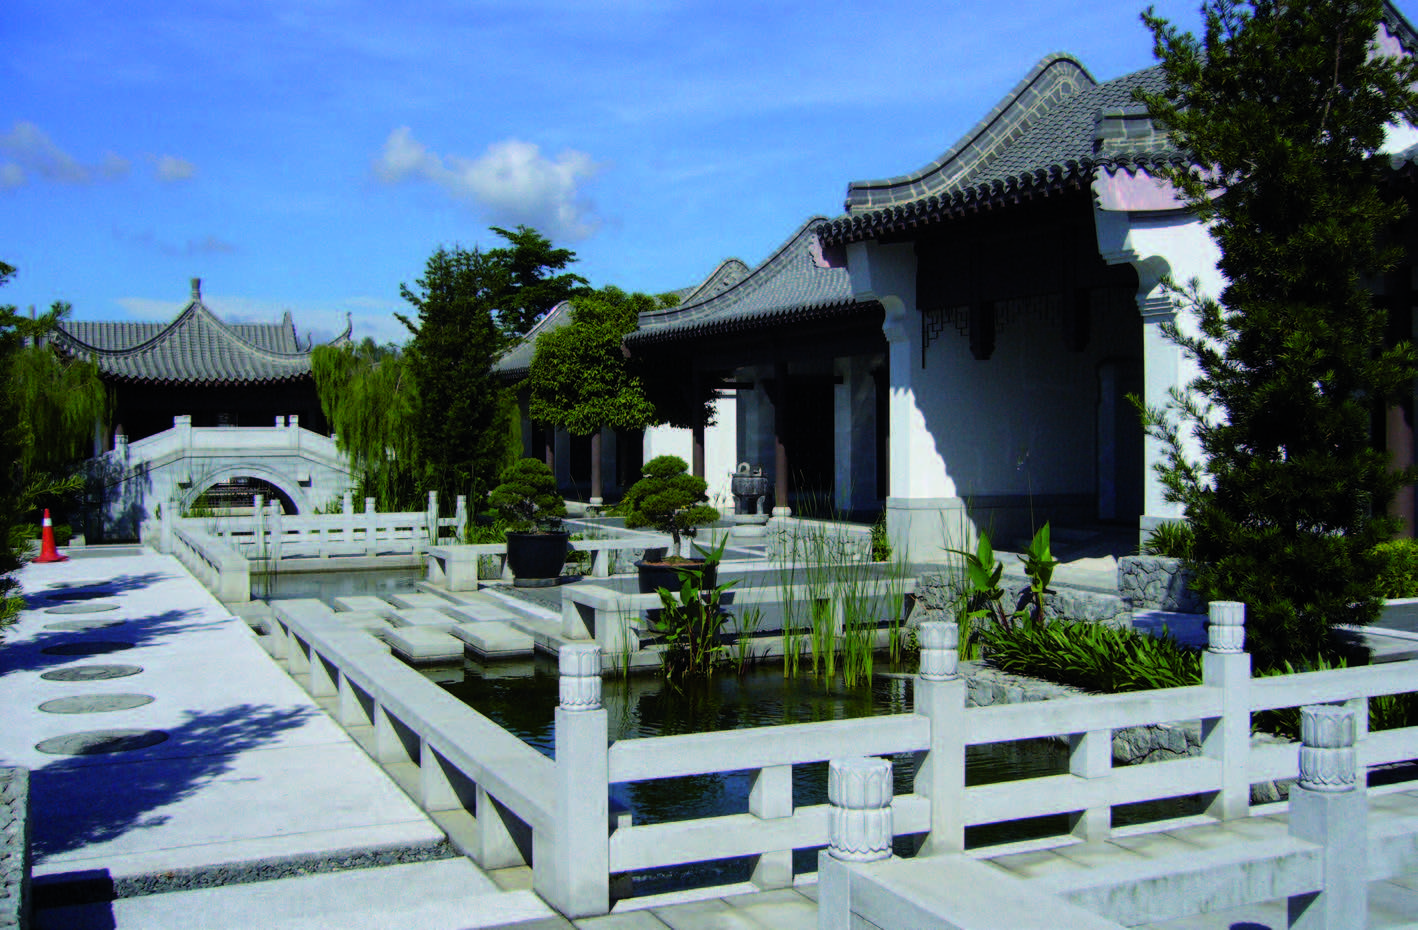 Rumah Mewah Di Korea From Cemeteries To Luxurious Memorial Parks